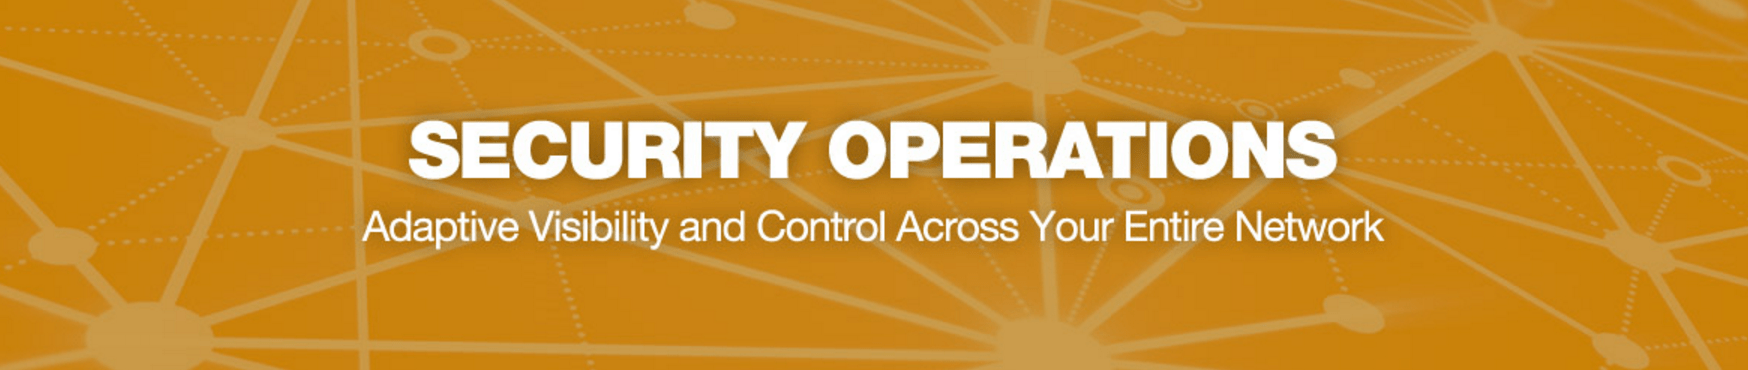 Fortinet Security Operations